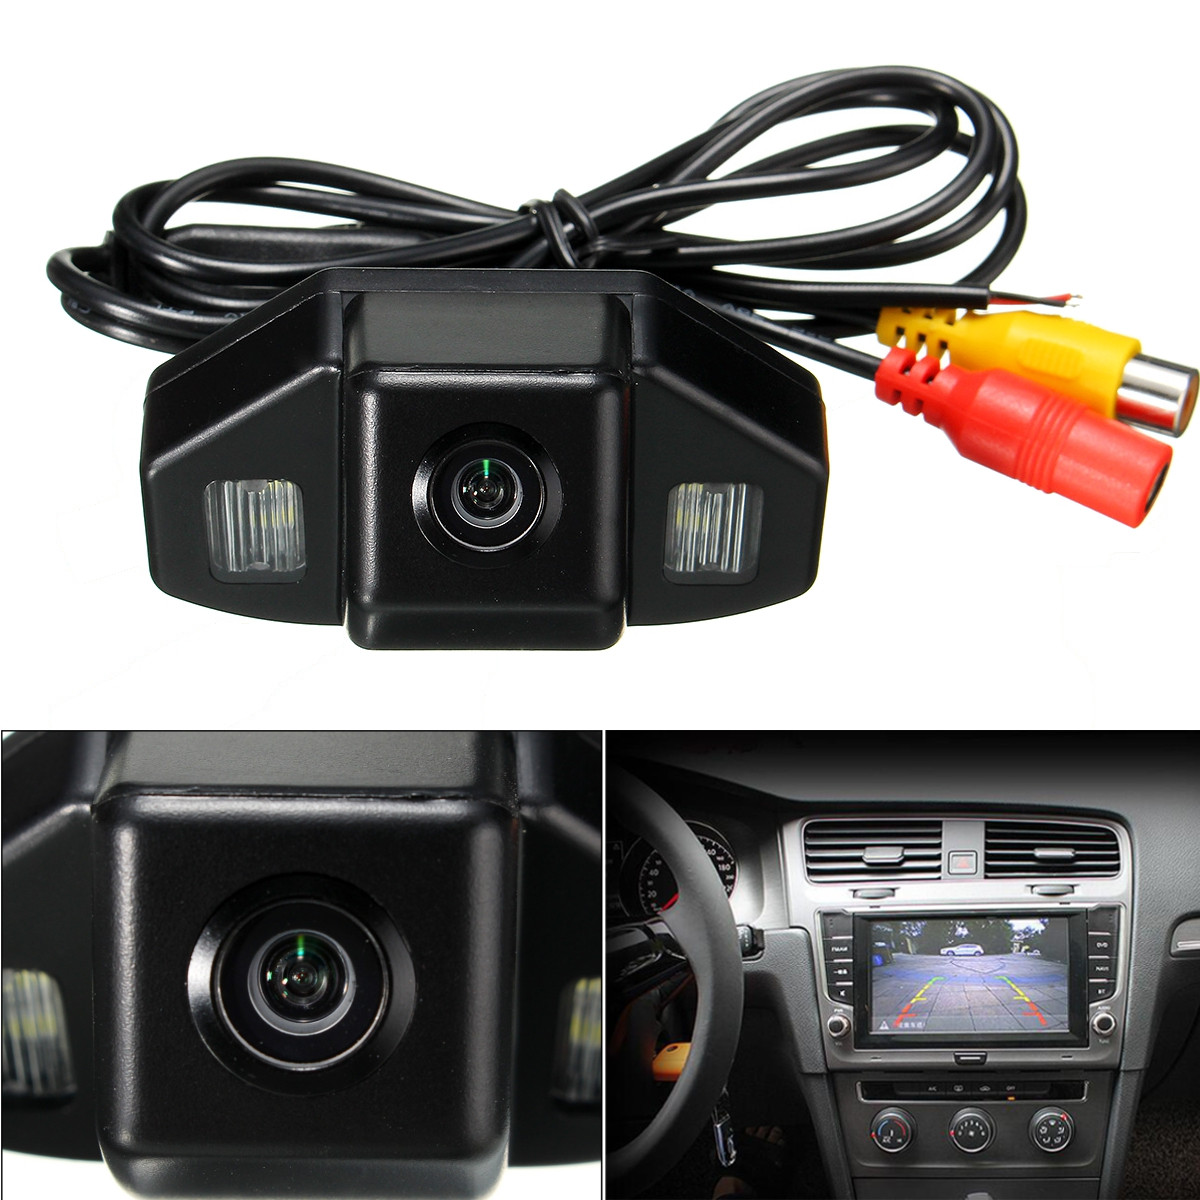 HD CCD Car Rear View Camera Reverse Parking Backup Night Vision For HONDA CRV 2007-2013 Odyssey 2008 2011